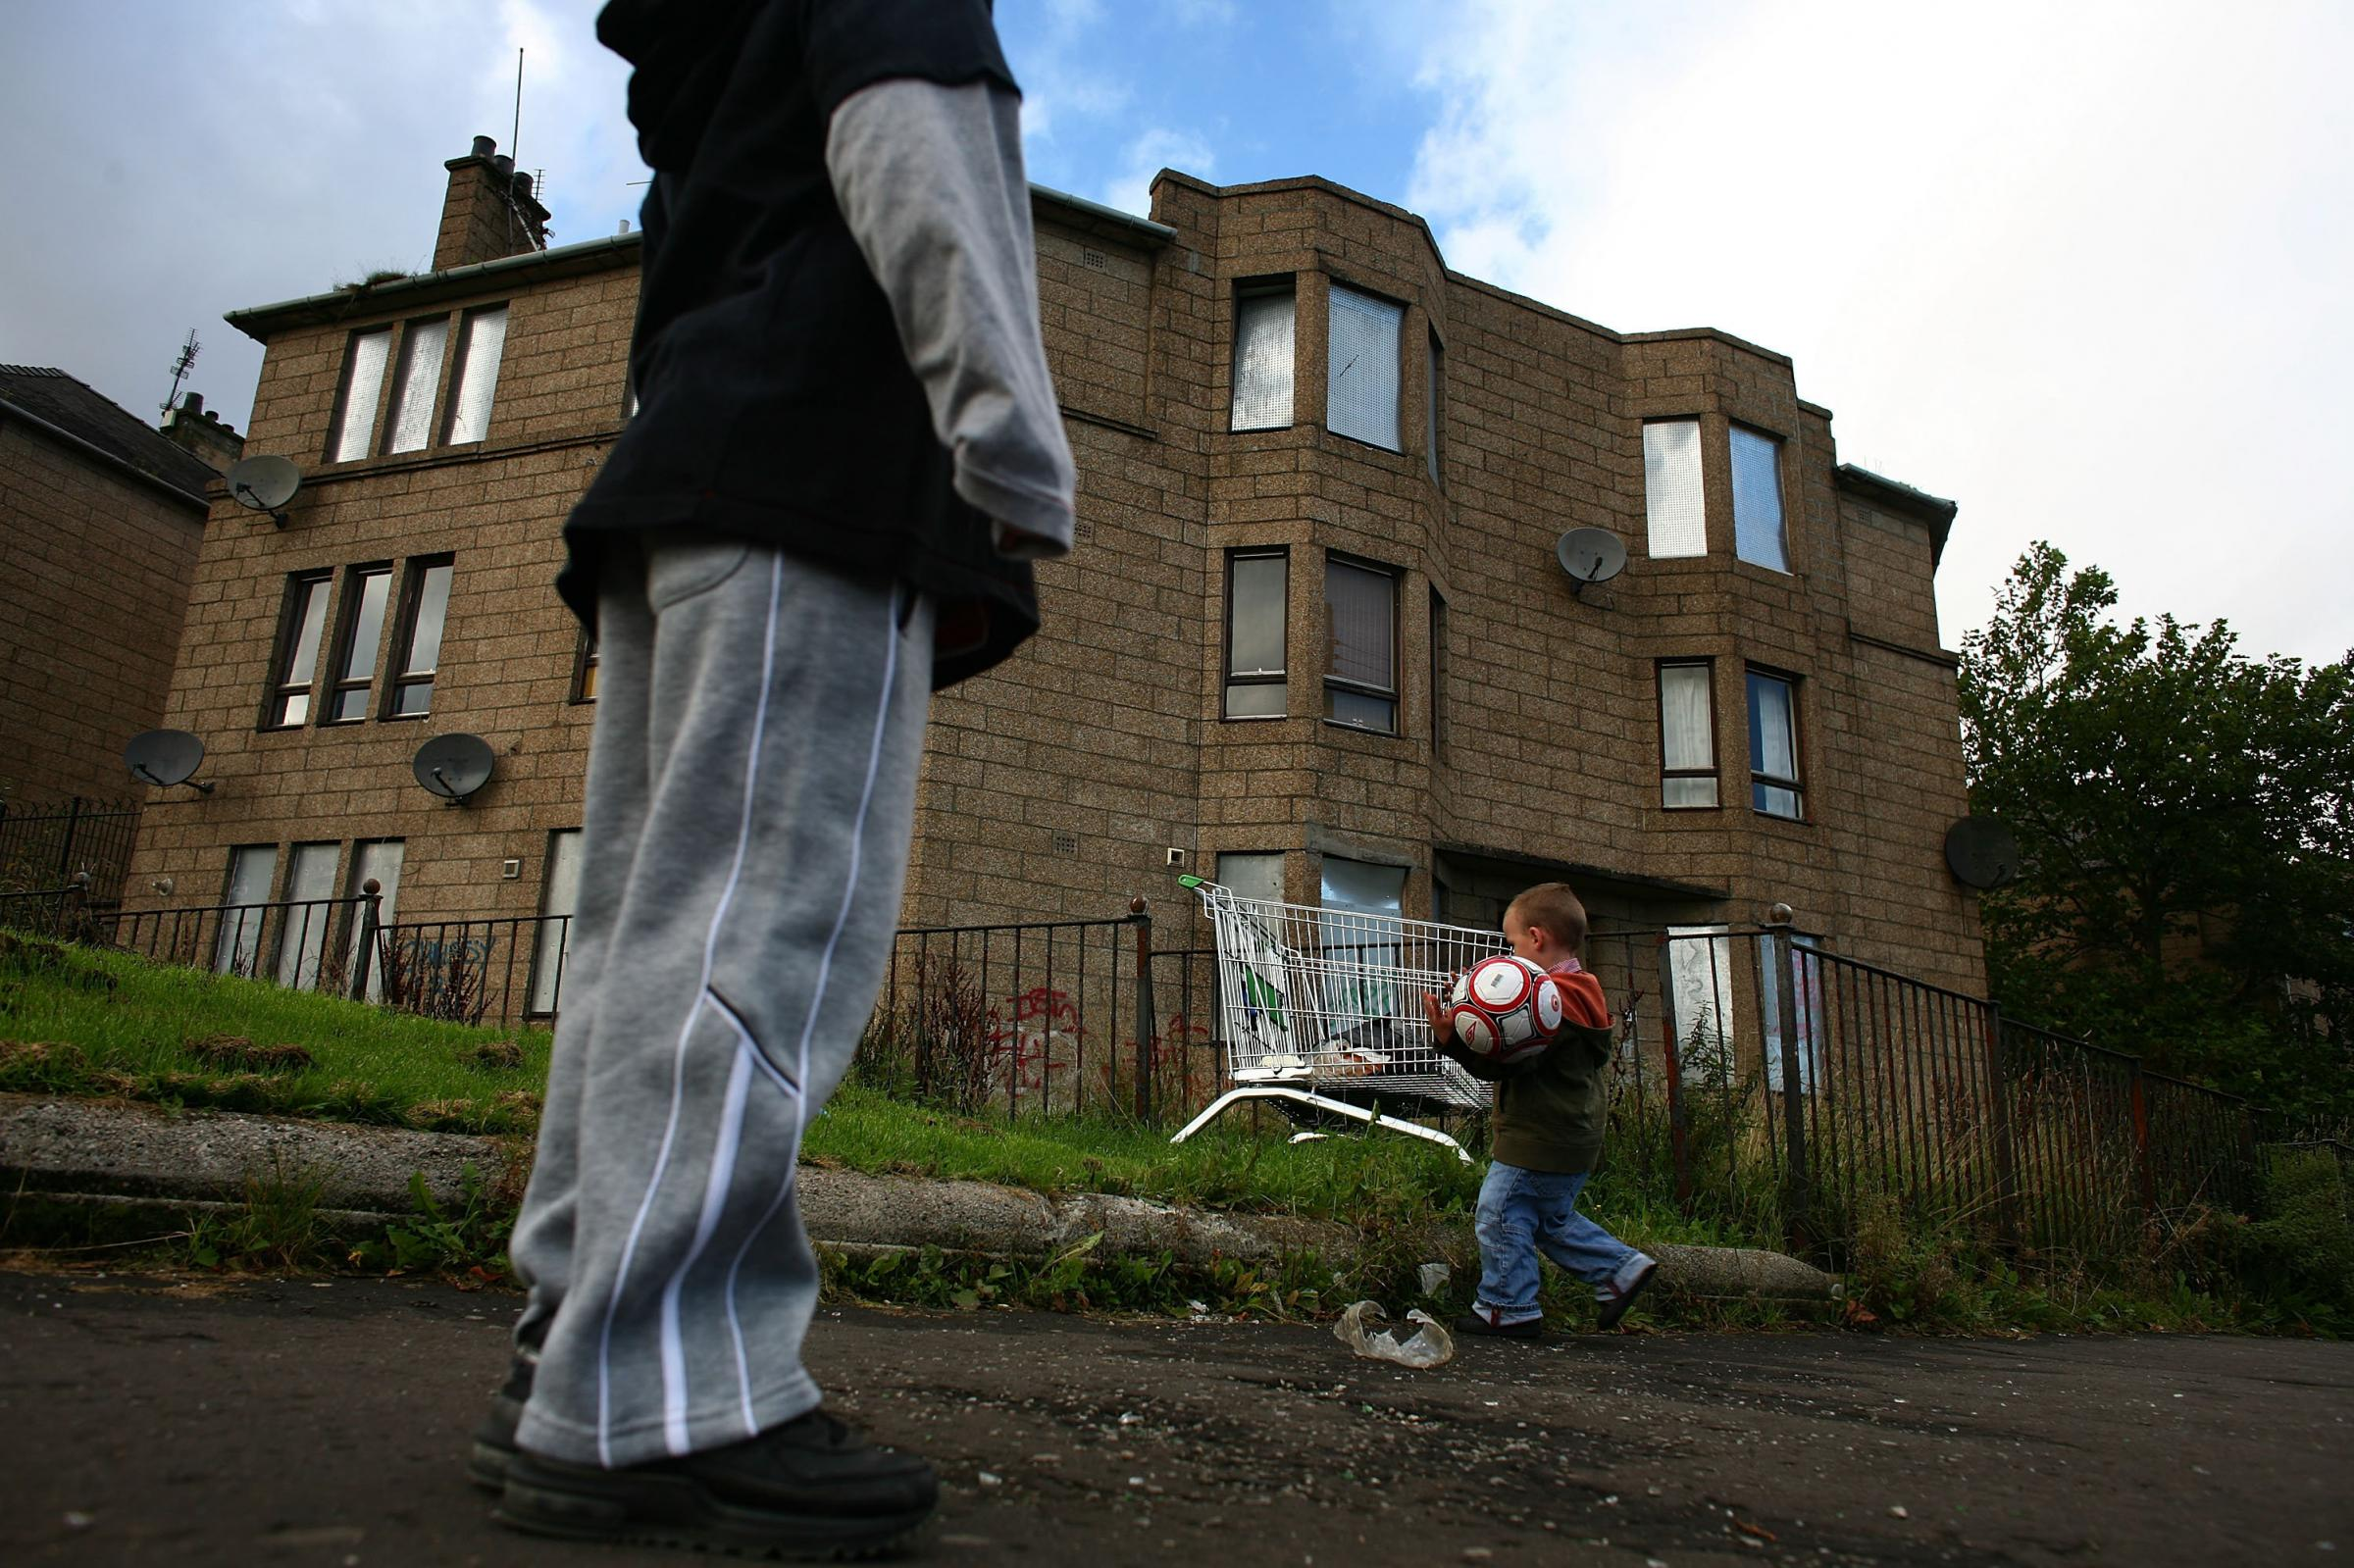 The Scottish Government aims to cut child poverty to one in 10 by 2030